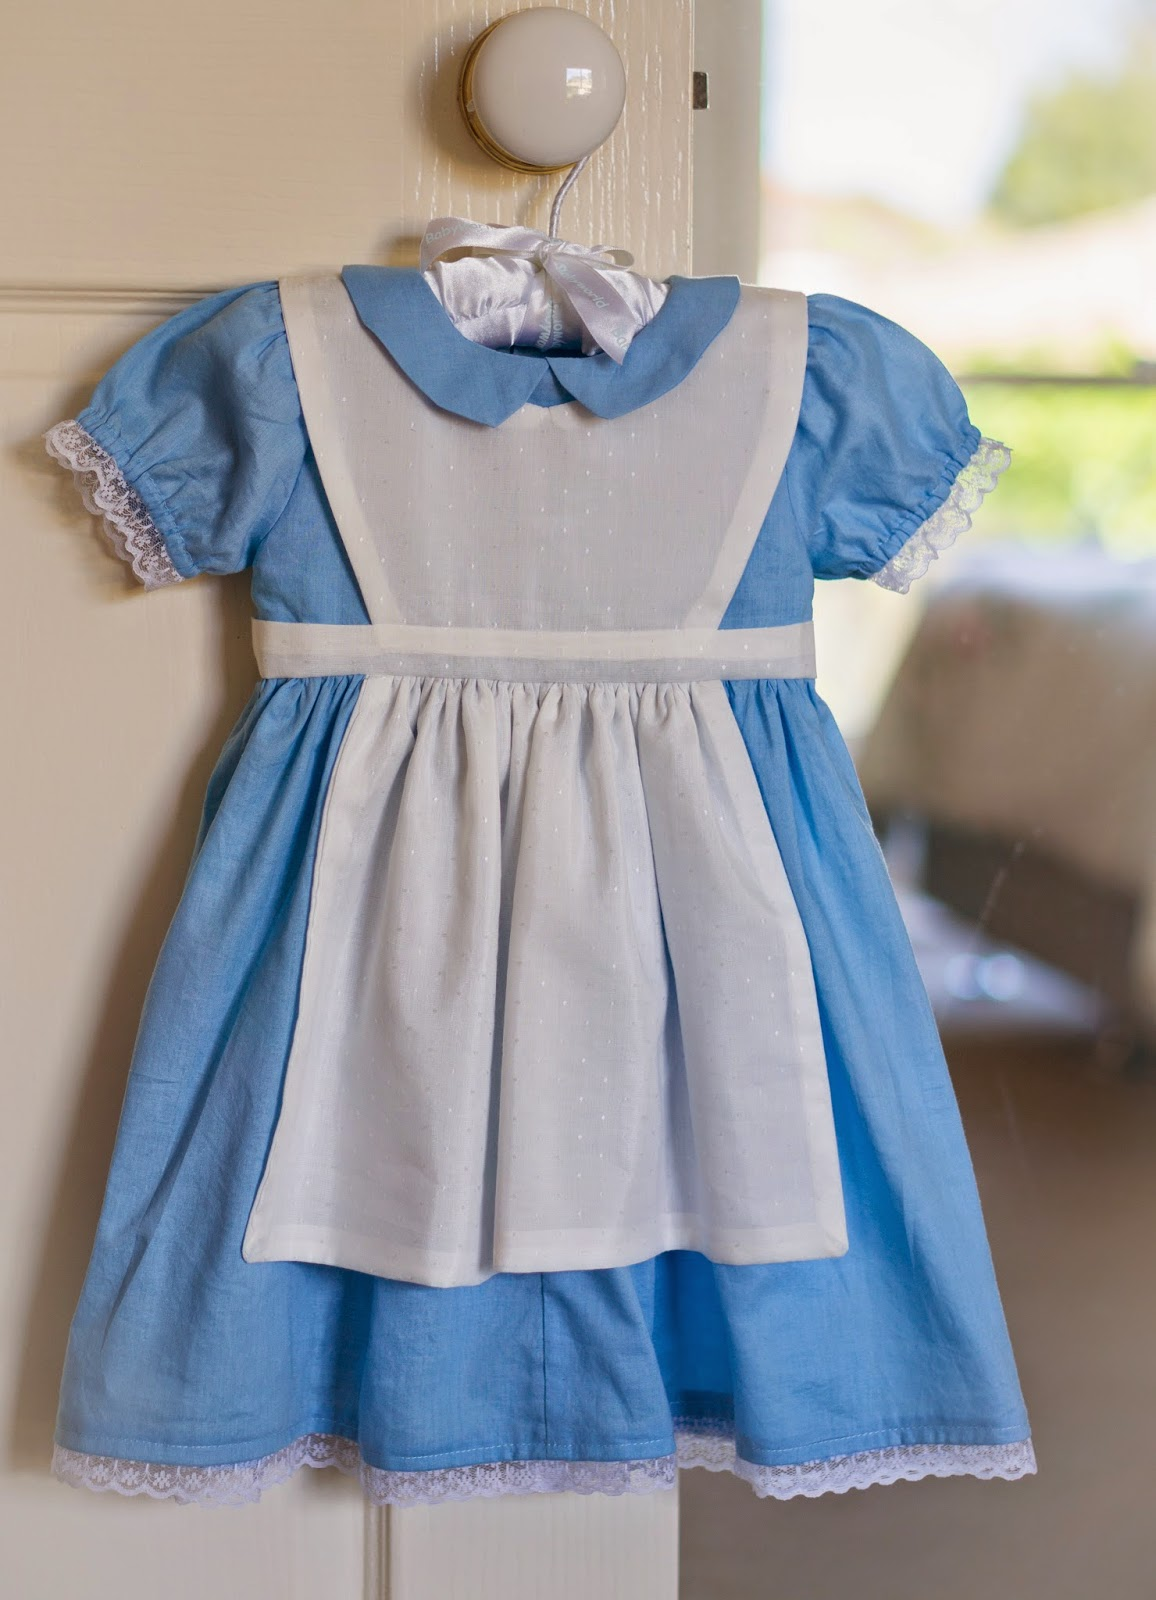 Twenty First Century Lady Alice In Wonderland Baby Dress